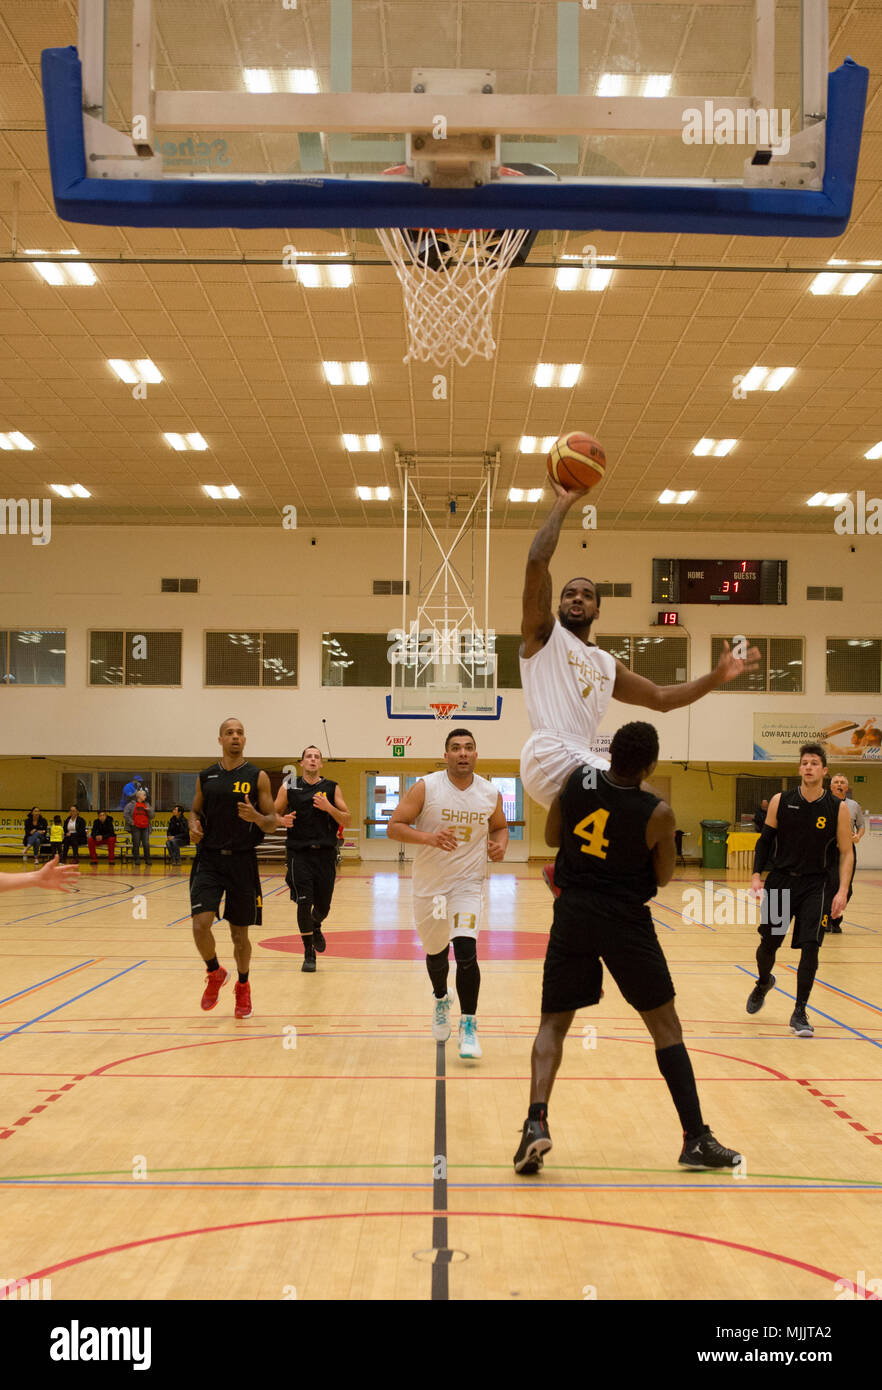 171202-F-GF466-1078 SHAPE, Belgium (Dec. 2, 2017) Supreme Headquarters Allied Powers Europe (SHAPE) Basketball Team member Travis Bell attempts a two-point shot around Belgium team member Claudy Bolampete during game 17 of the 2017 SHAPE International Basketball Tournament. The annual event brings together teams from around the world for friendly competition and partnership at a prominent NATO installation.(U.S. Air Force photo by Broadcast Journalist Airman 1st Class Hannah Anderson/Released) Stock Photo